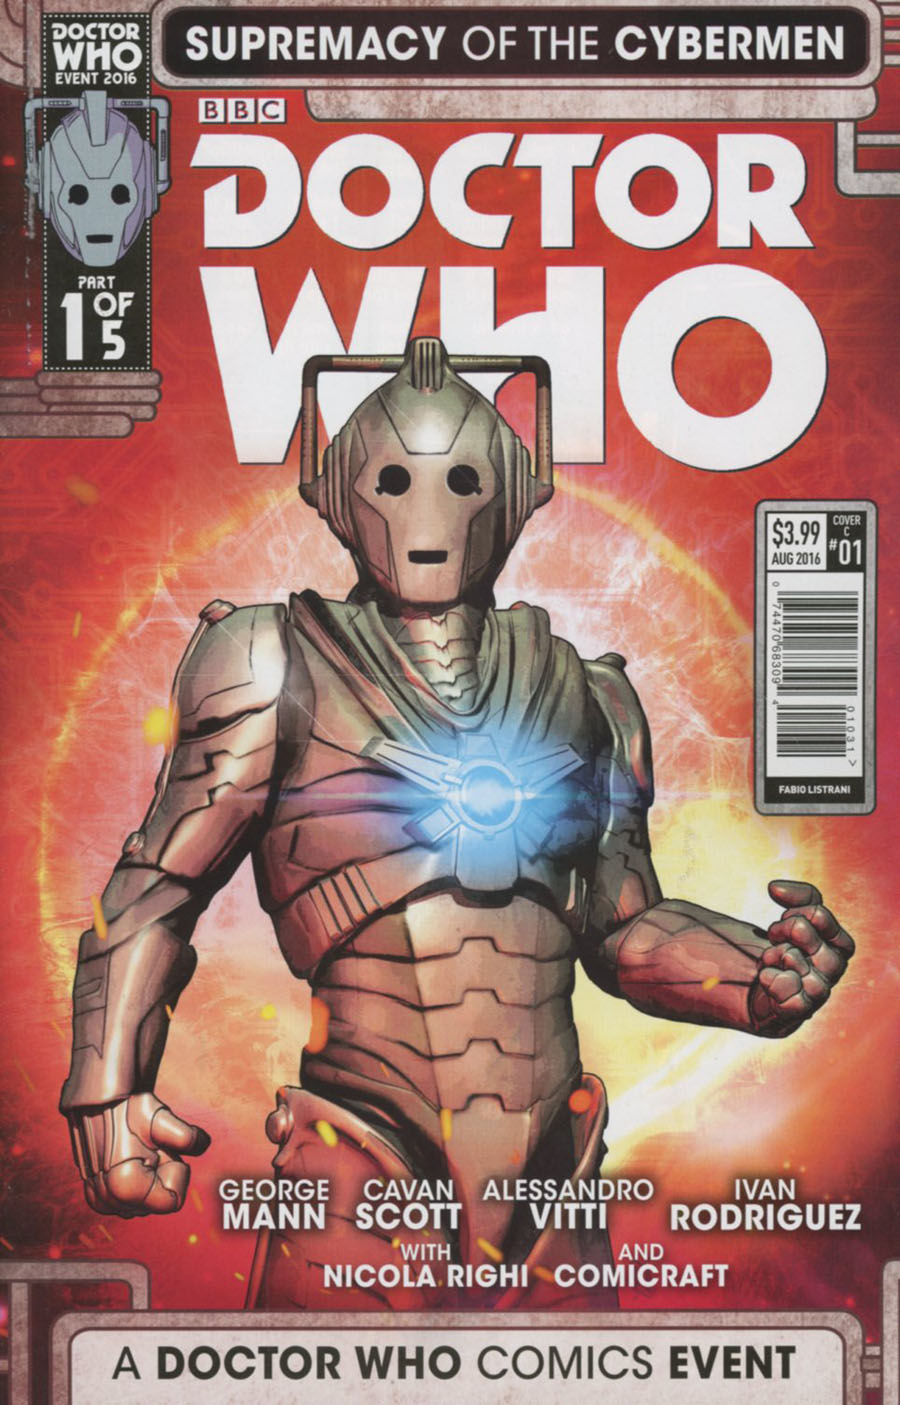 Doctor Who Event 2016 Supremacy Of The Cybermen #1 Cover C Variant Fabio Listrani Cover